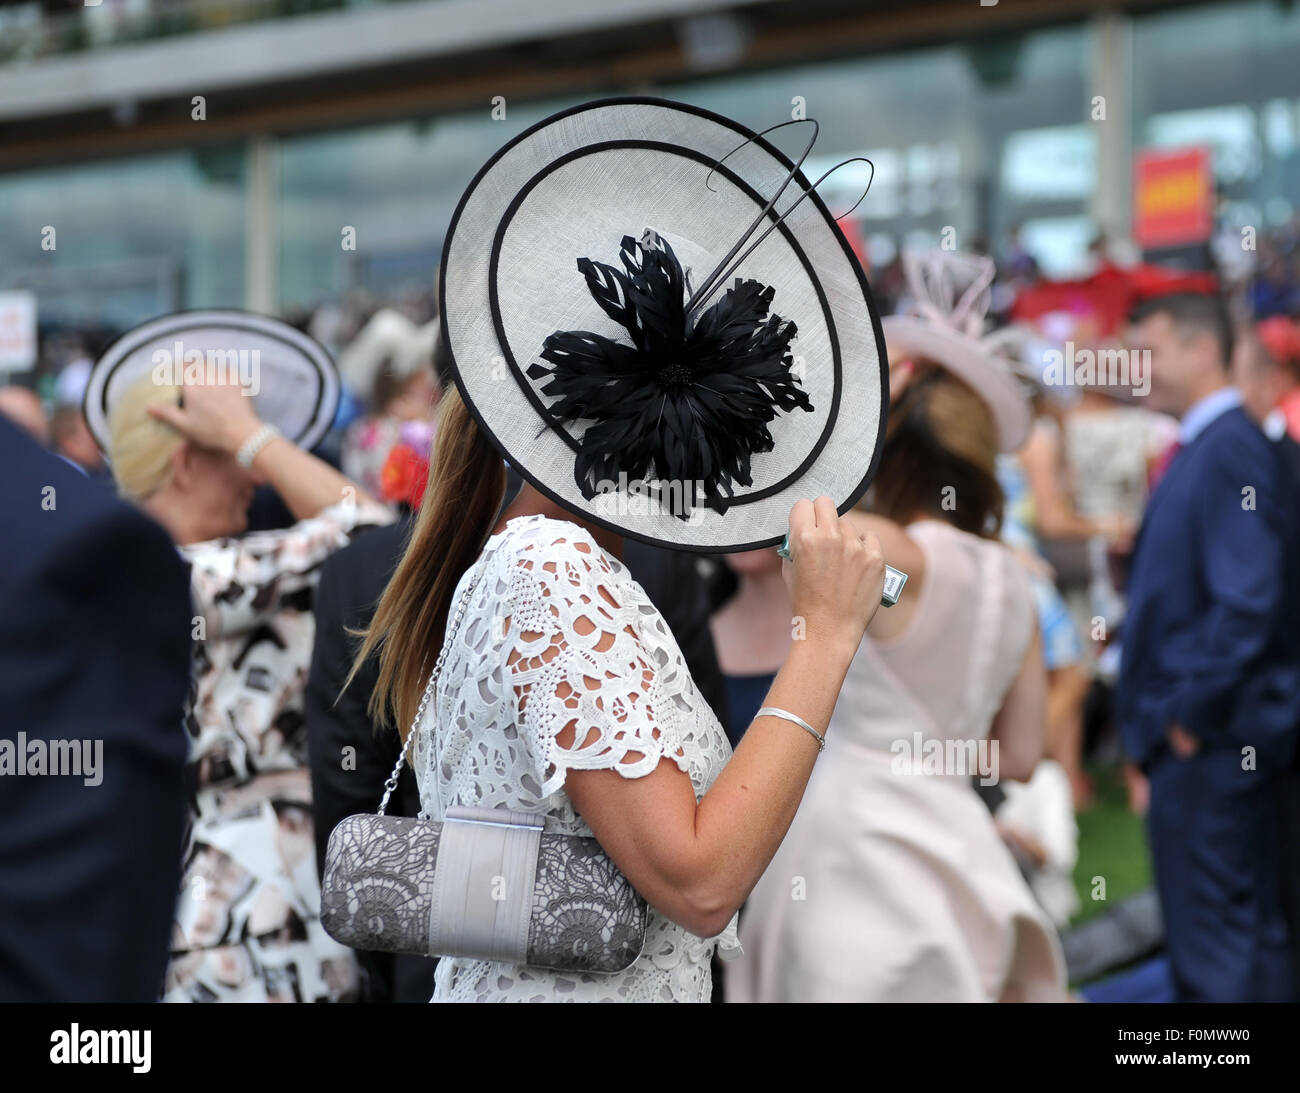 Royal Ascot 2015 held at Ascot Racecourse - Day 2  Where: Ascot, United Kingdom When: 16 Jun 2015 - Stock Image